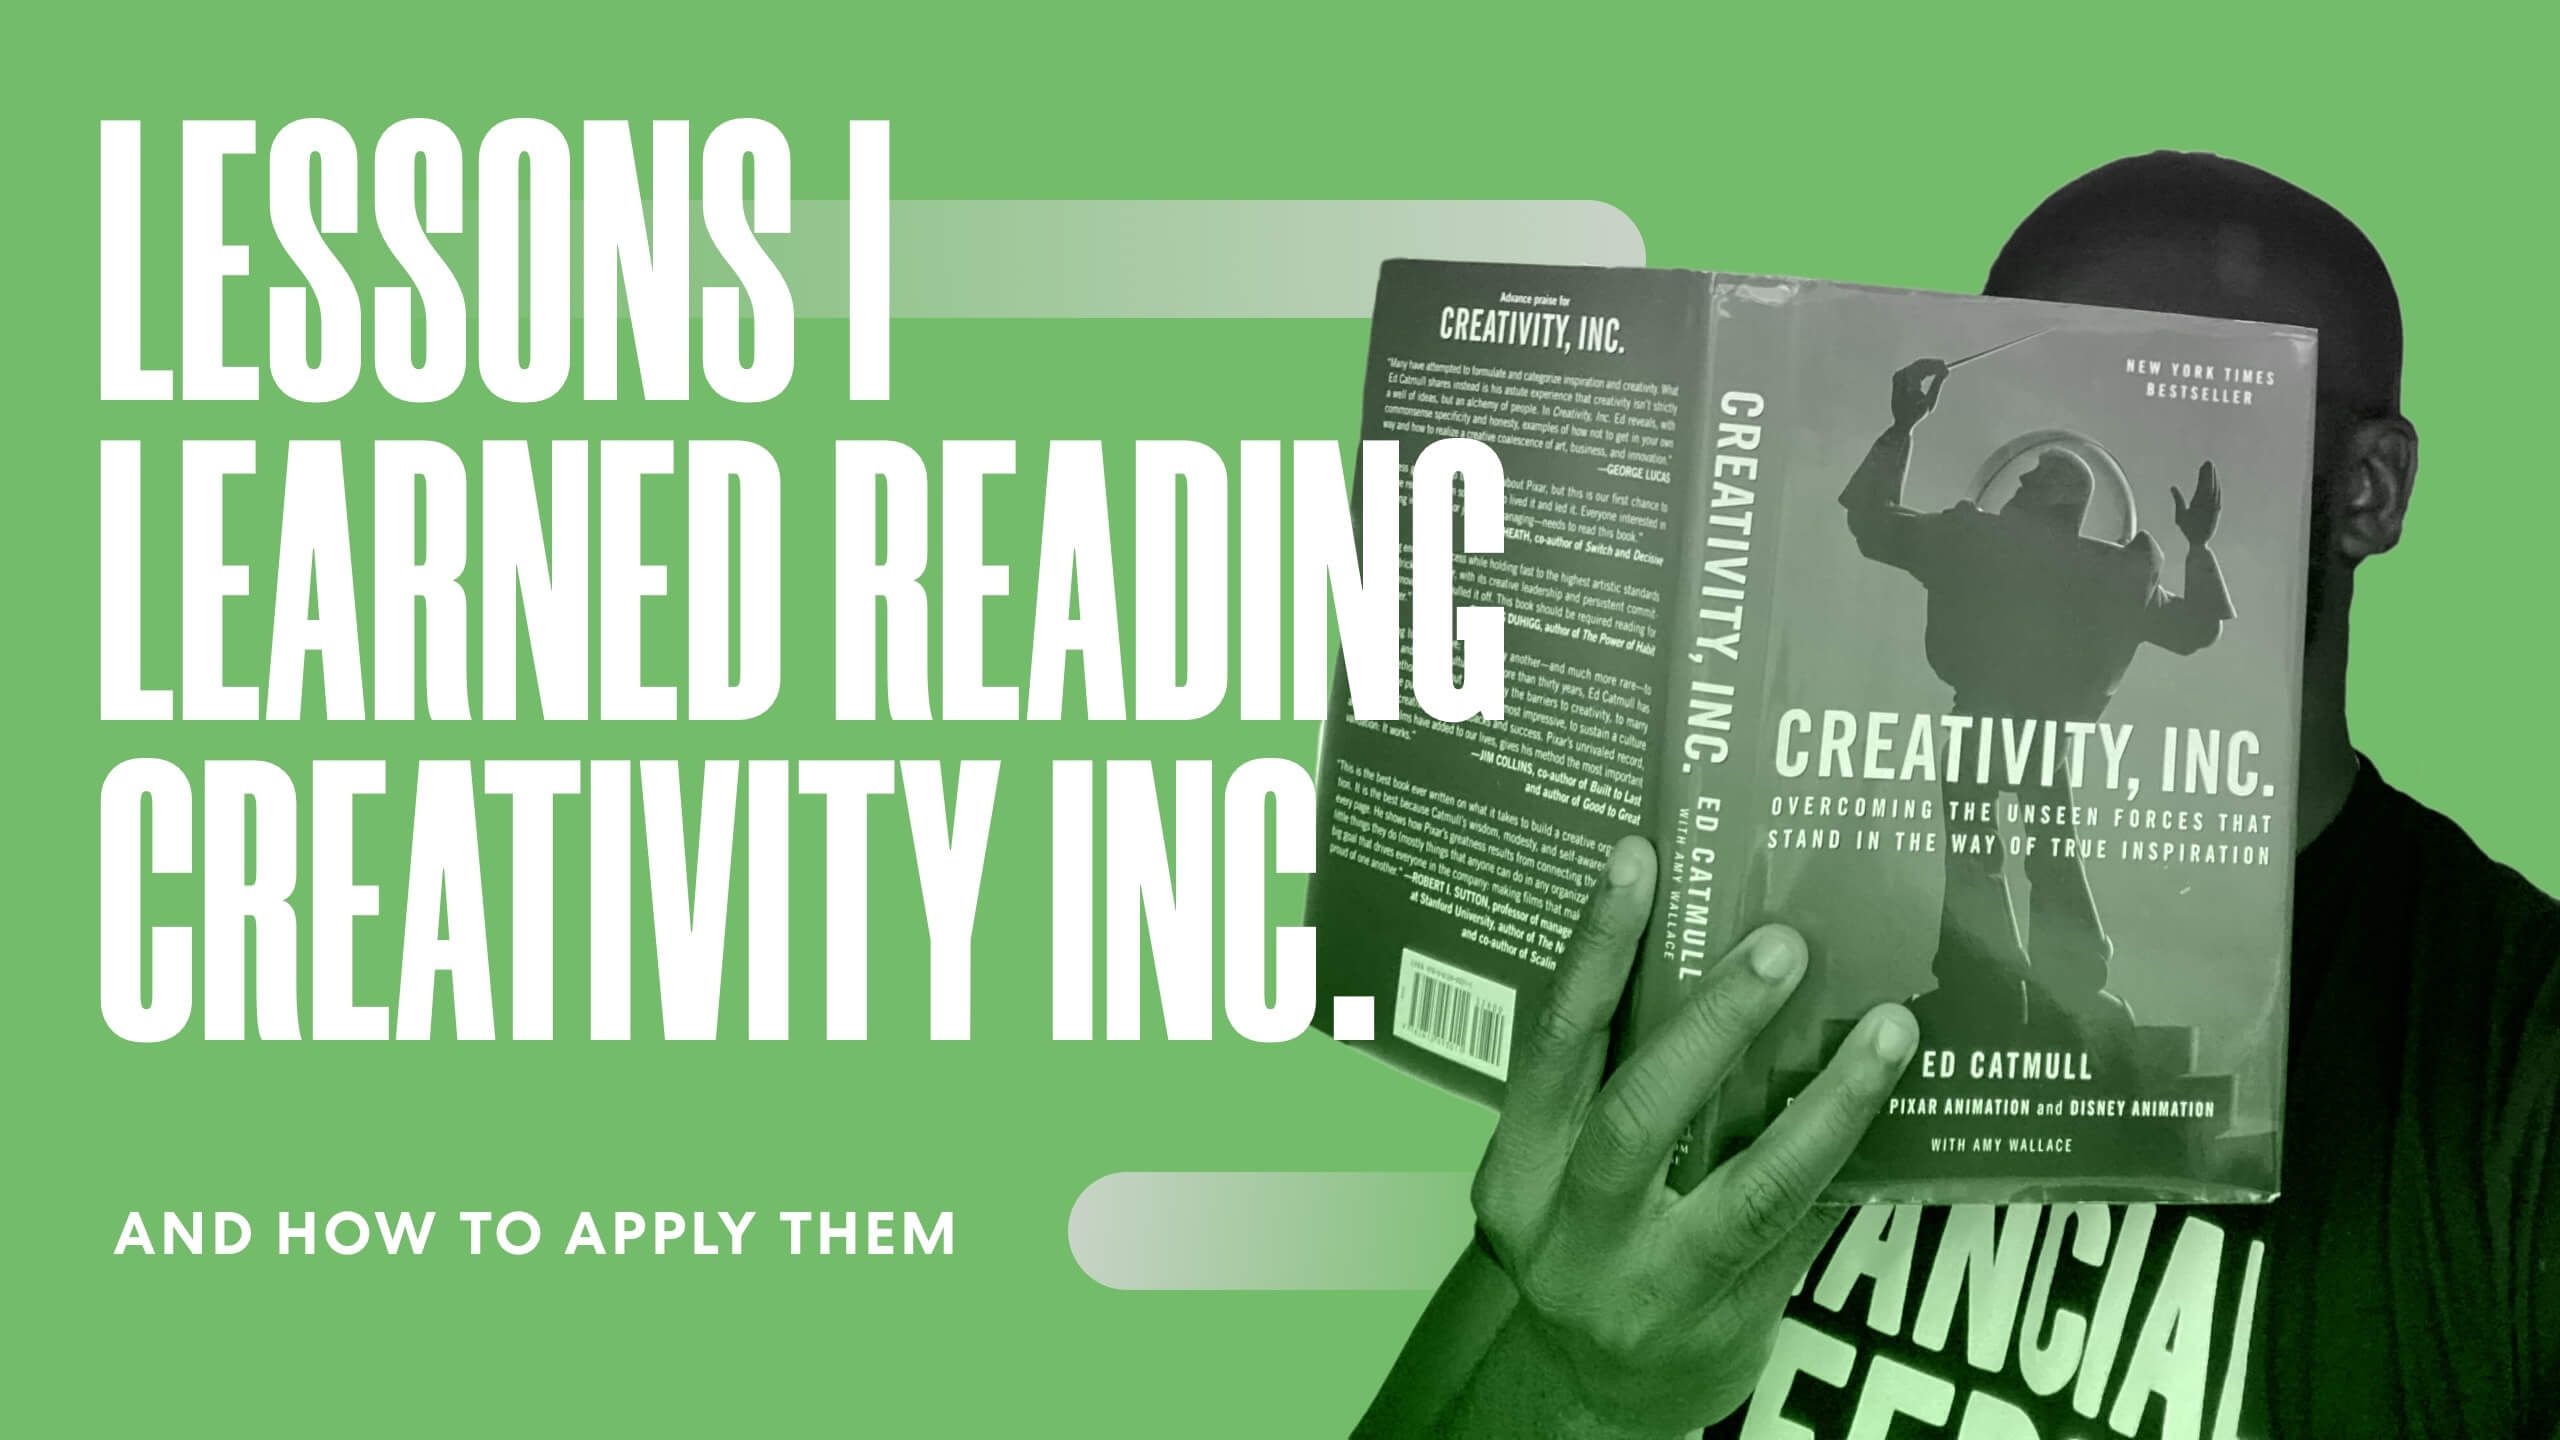 Lessons I Learned from the President of Pixar's Book, Creativity Inc. and How to Apply Them